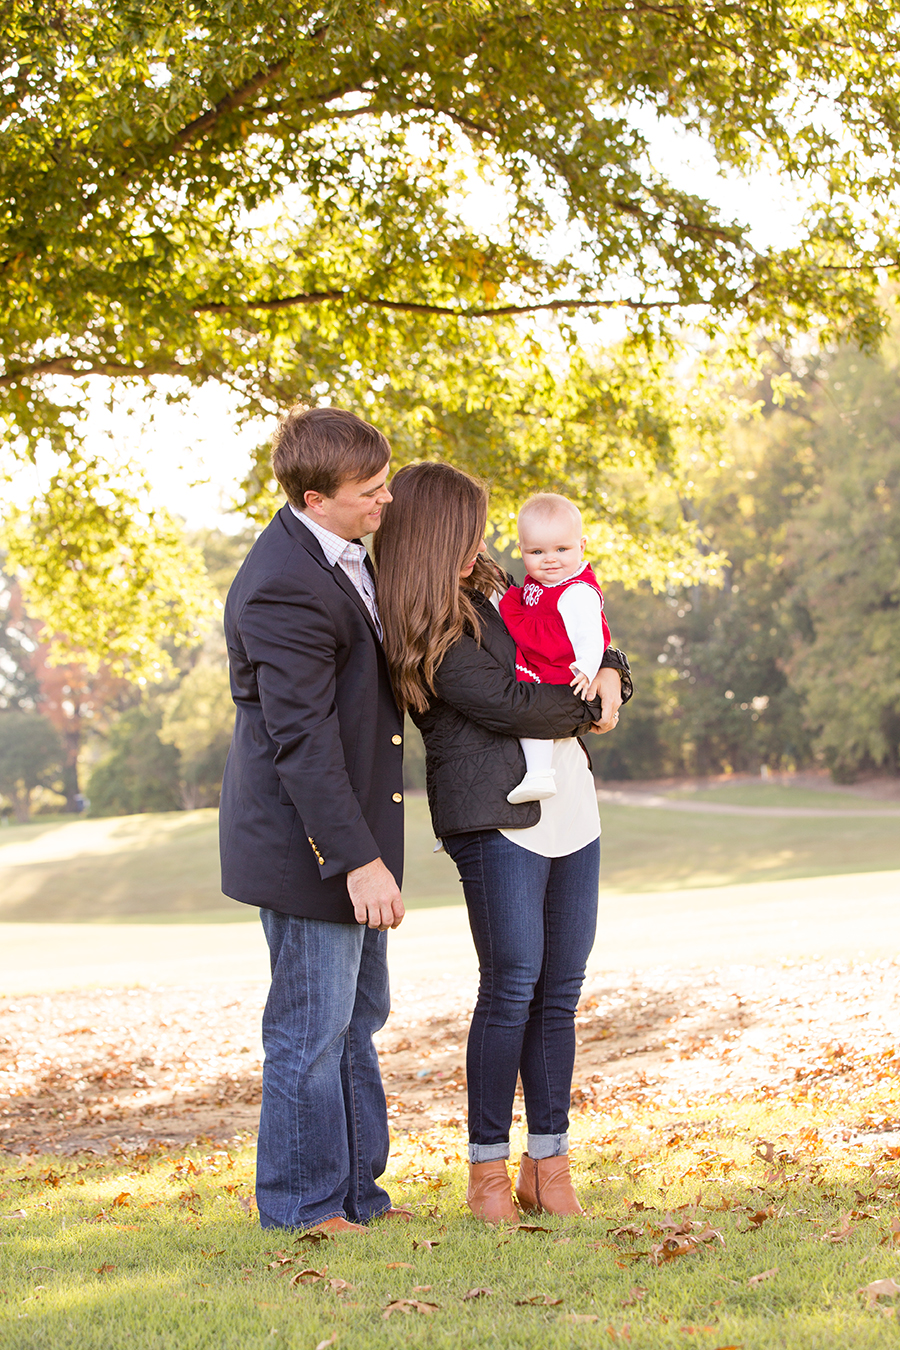 Hunter Family Photos at The Country Club of Virginia - Image Property of www.j-dphoto.com